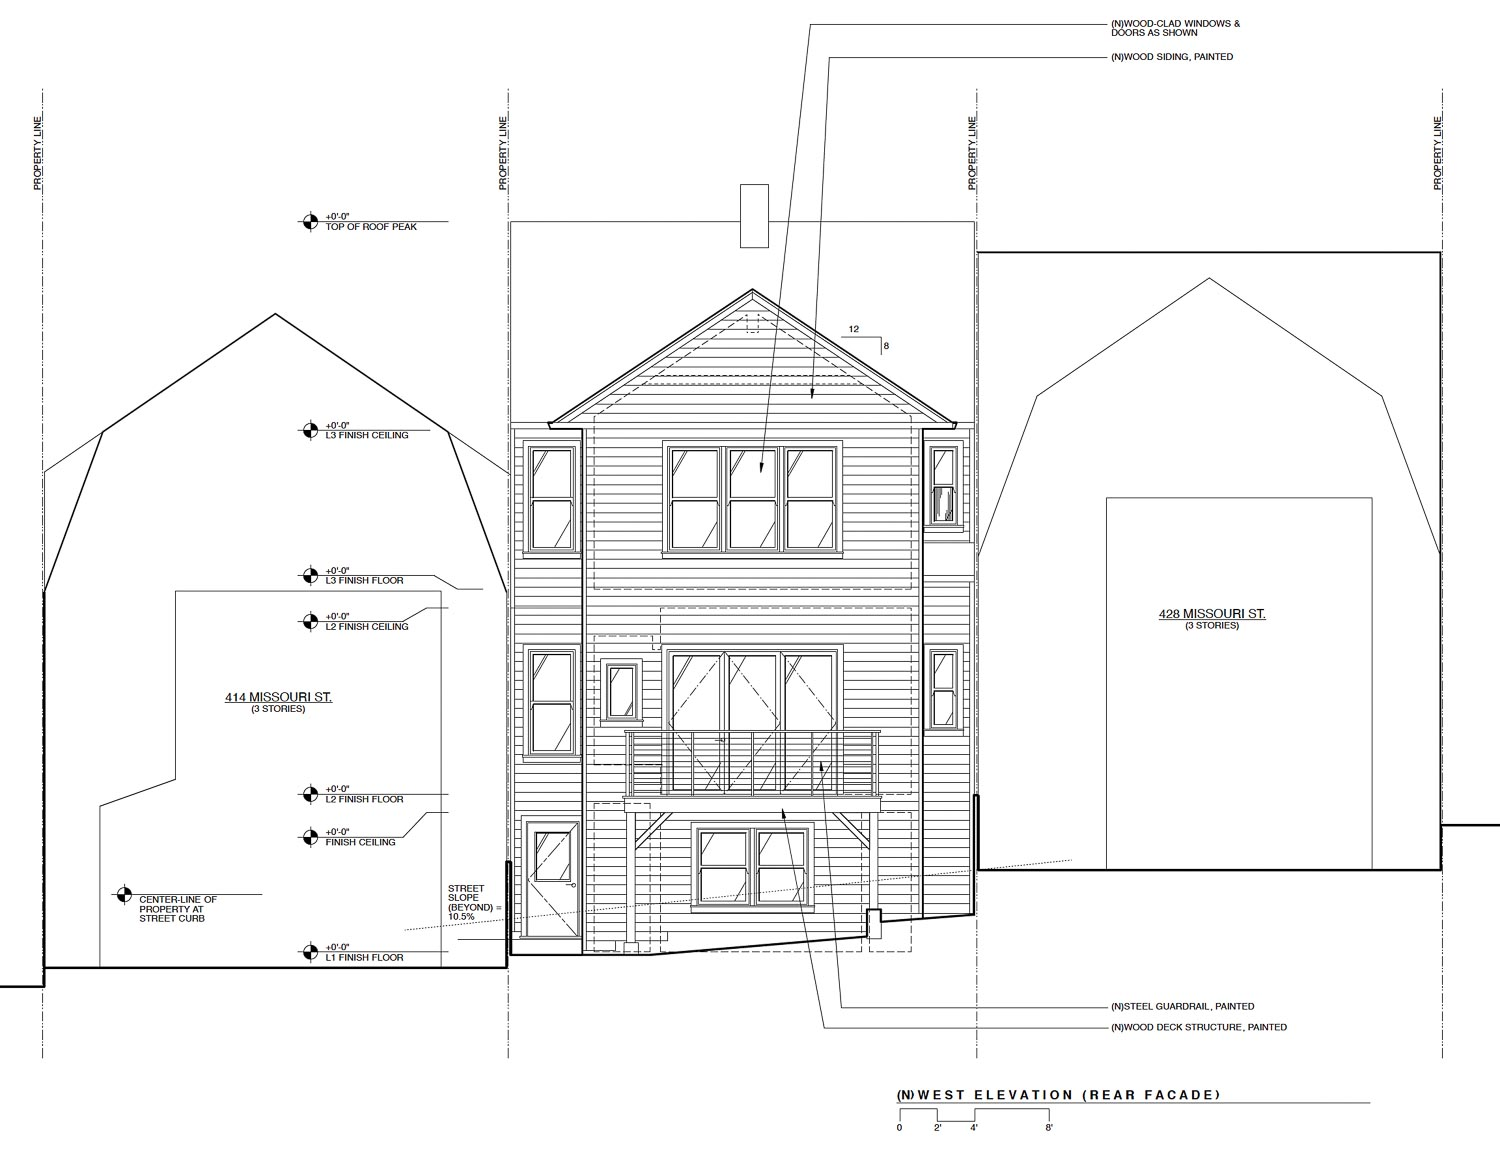 422 Missouri Street, west elevation of rear facade proposal, drawing by Apparatus Architecture